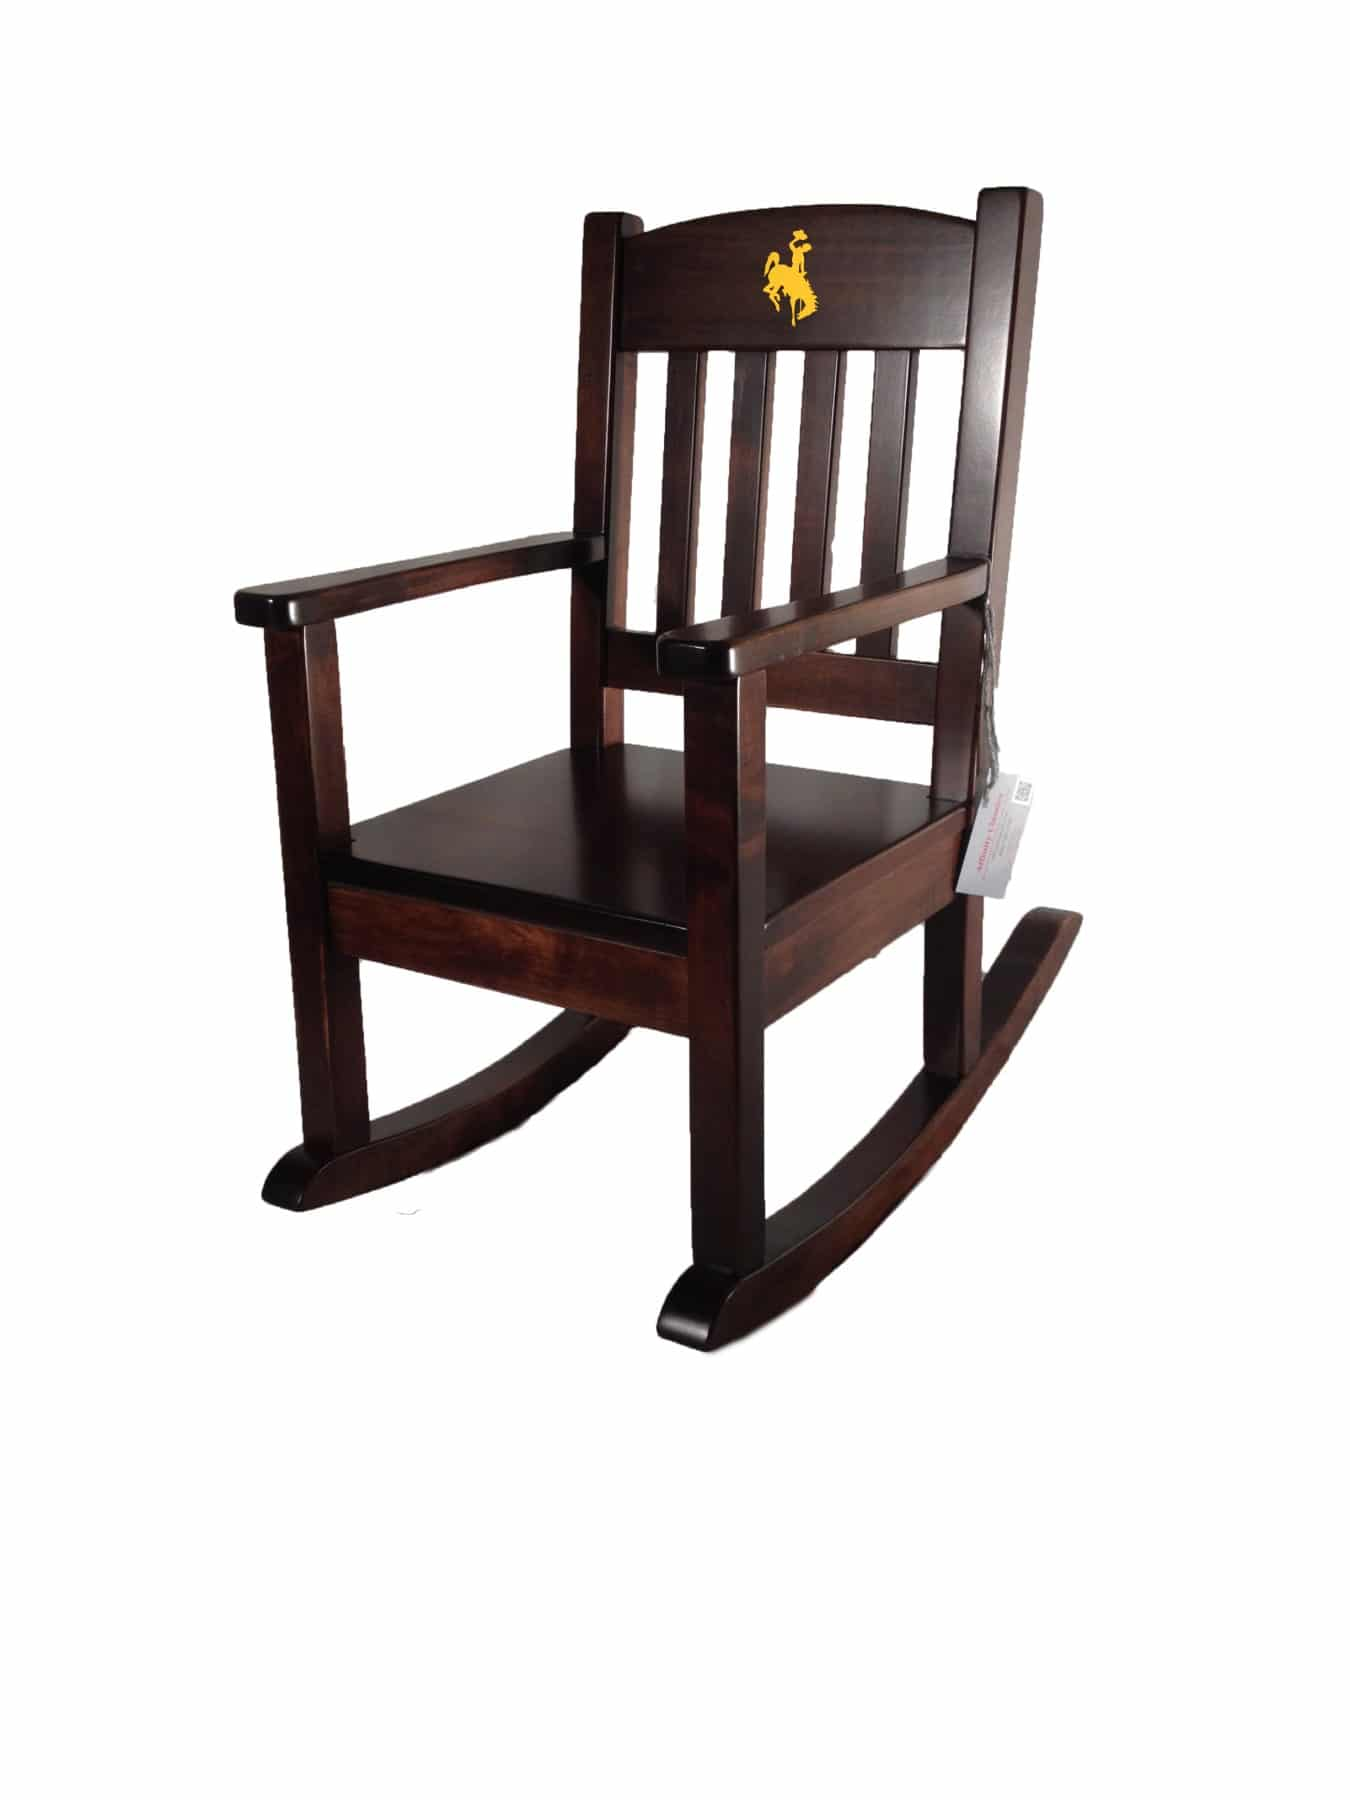 Rocking Chairs University Of Wyoming Affinity Child Rocking Chair Acrc Gold Steamboat Logo